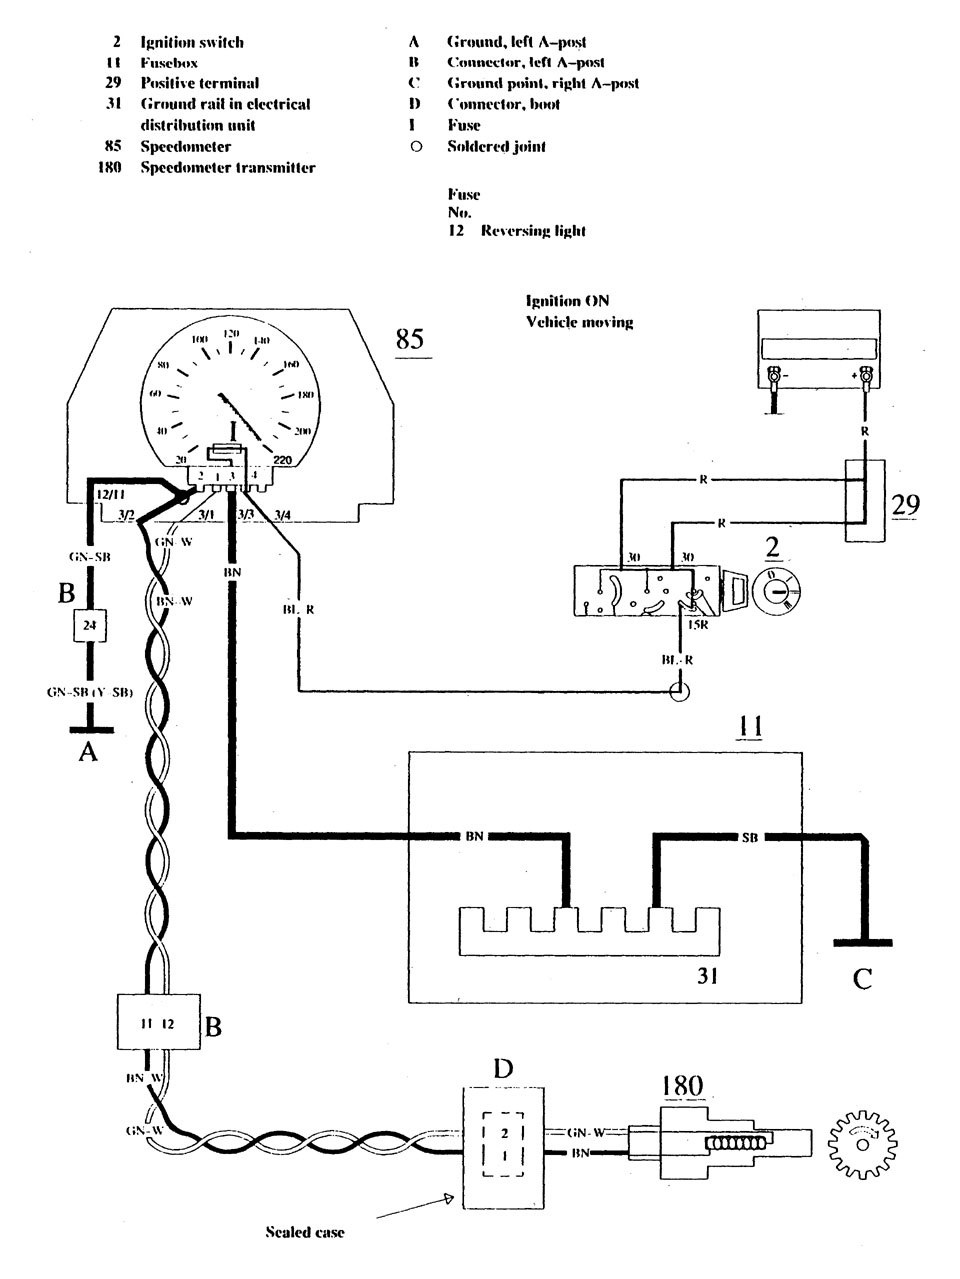 Volvo 740  1990  - Wiring Diagrams - Instrumentation